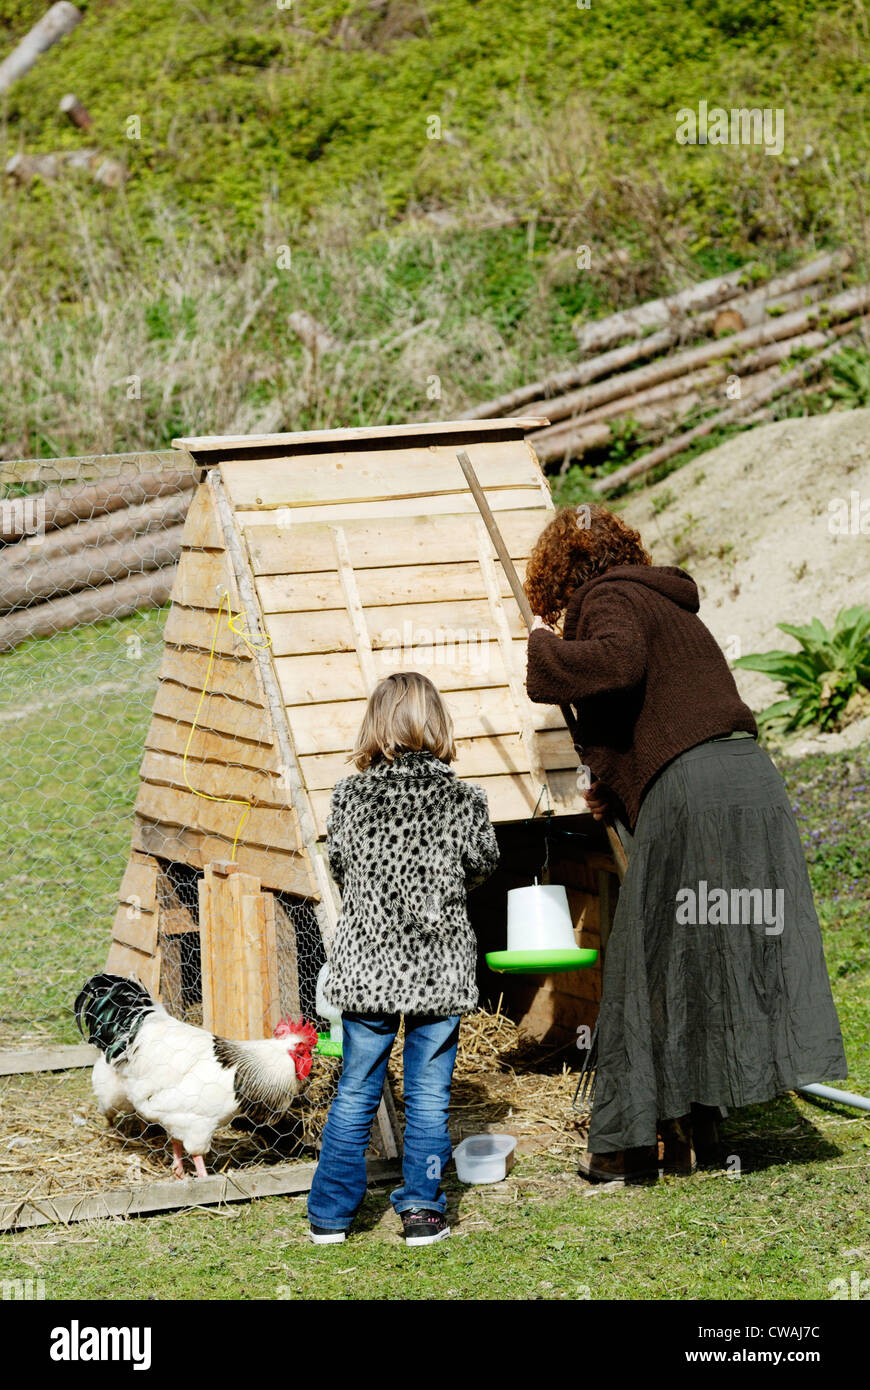 Young girl and grandmother tending to chickens, Wales. - Stock Image